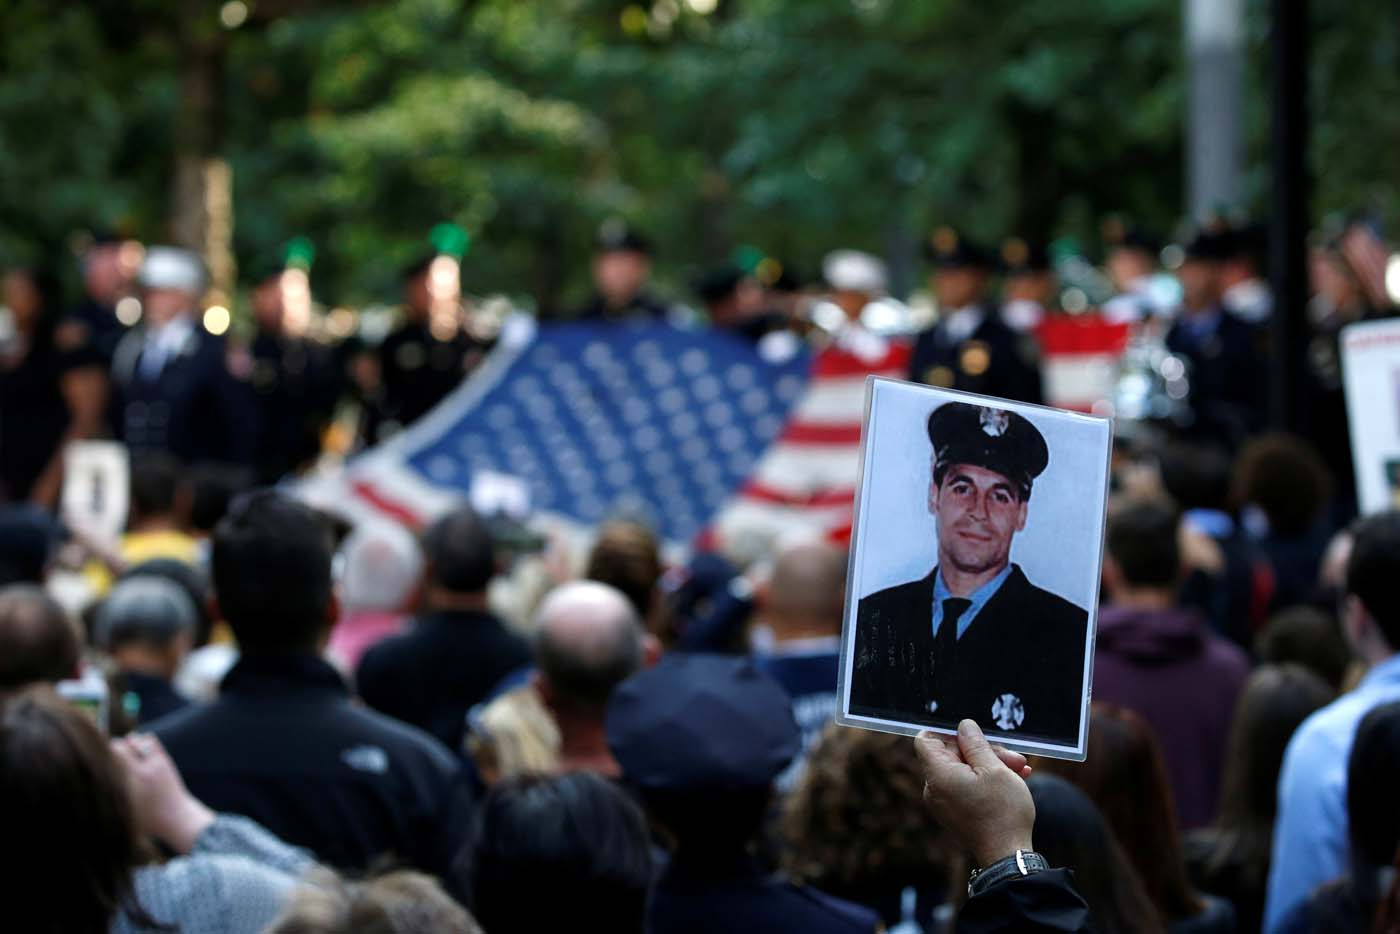 A person holds up a photograph of a victim at the National September 11 Memorial and Museum during ceremonies marking the 16th anniversary of the September 11, 2001 attacks in New York, U.S. September 11, 2017. REUTERS/Brendan McDermid